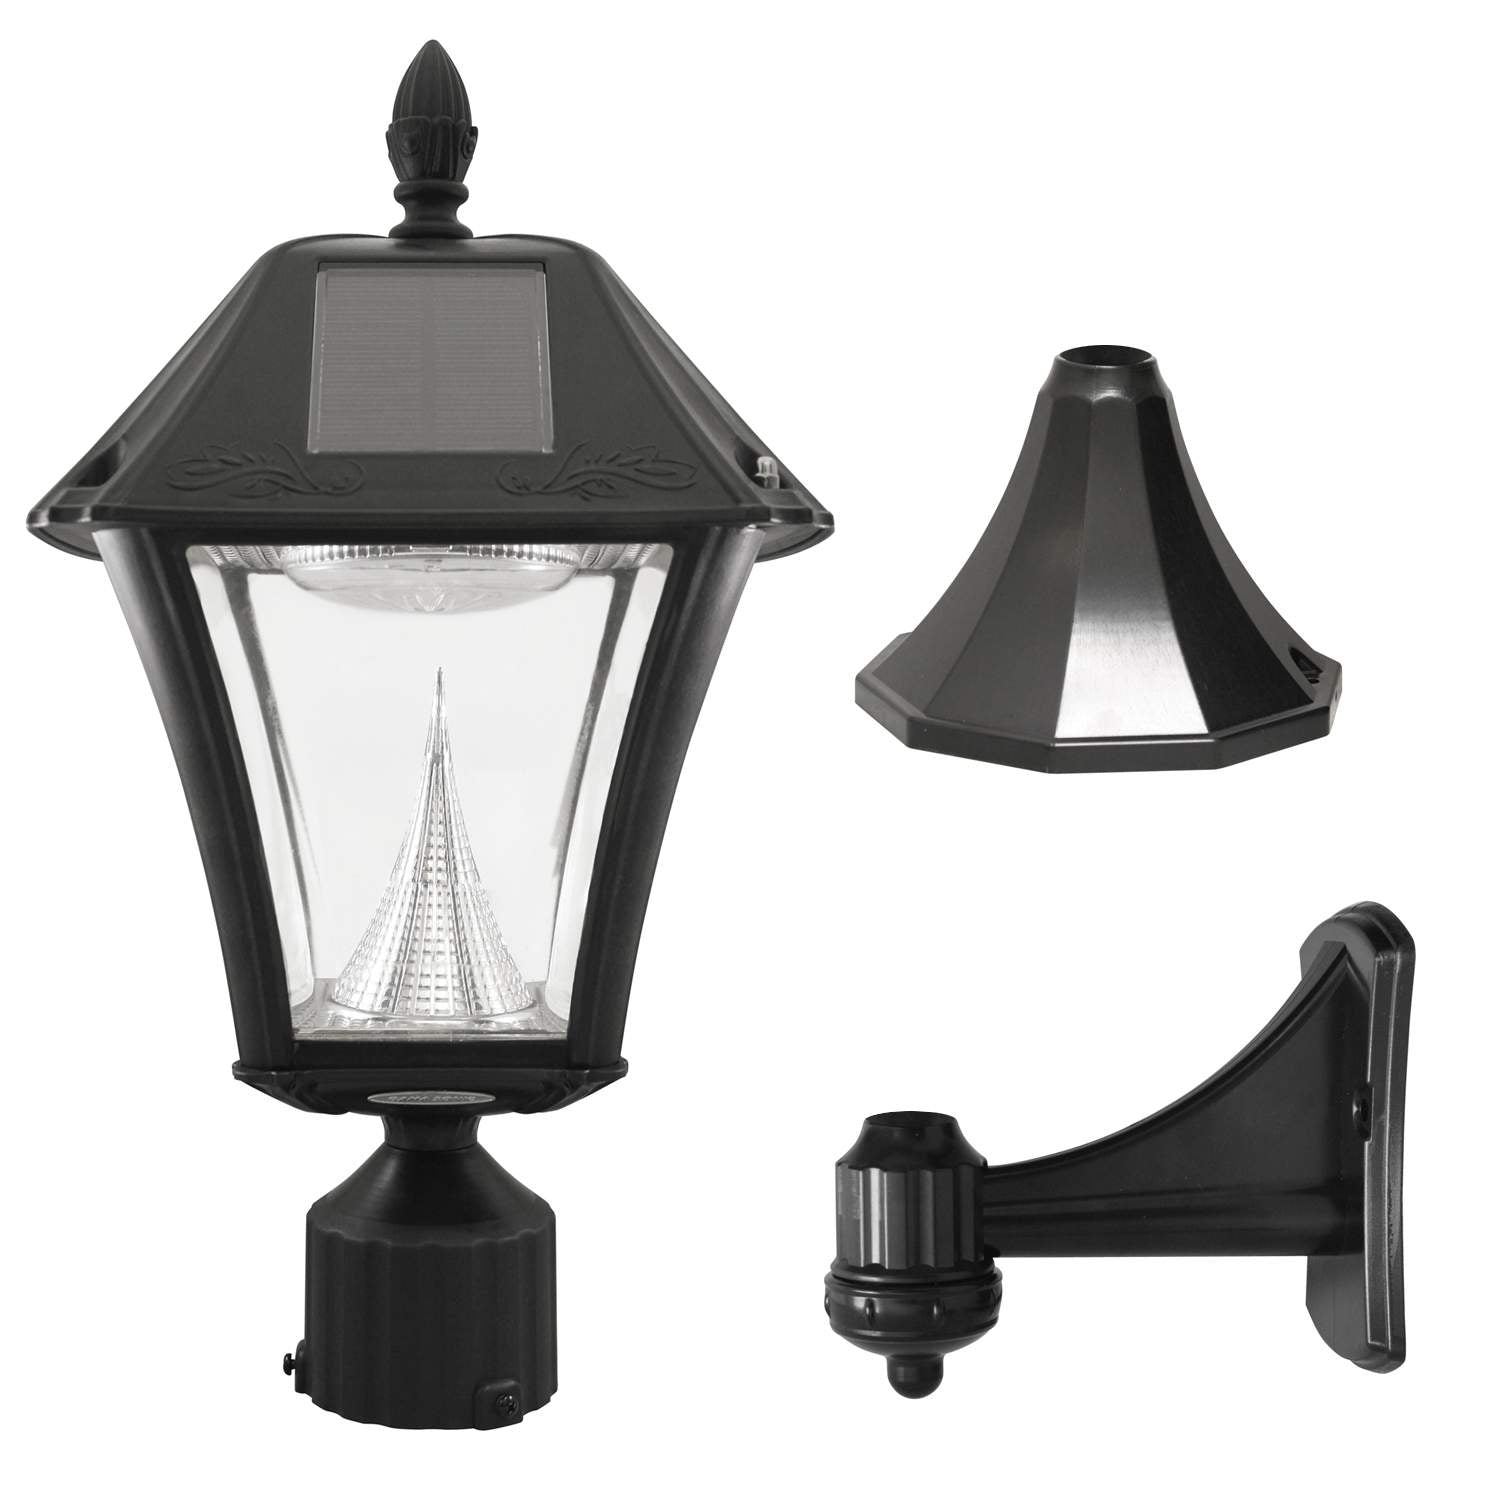 Gama Sonic Baytown II Solar Light with Wall,Post,Fitter Mounts, GS-105FPW